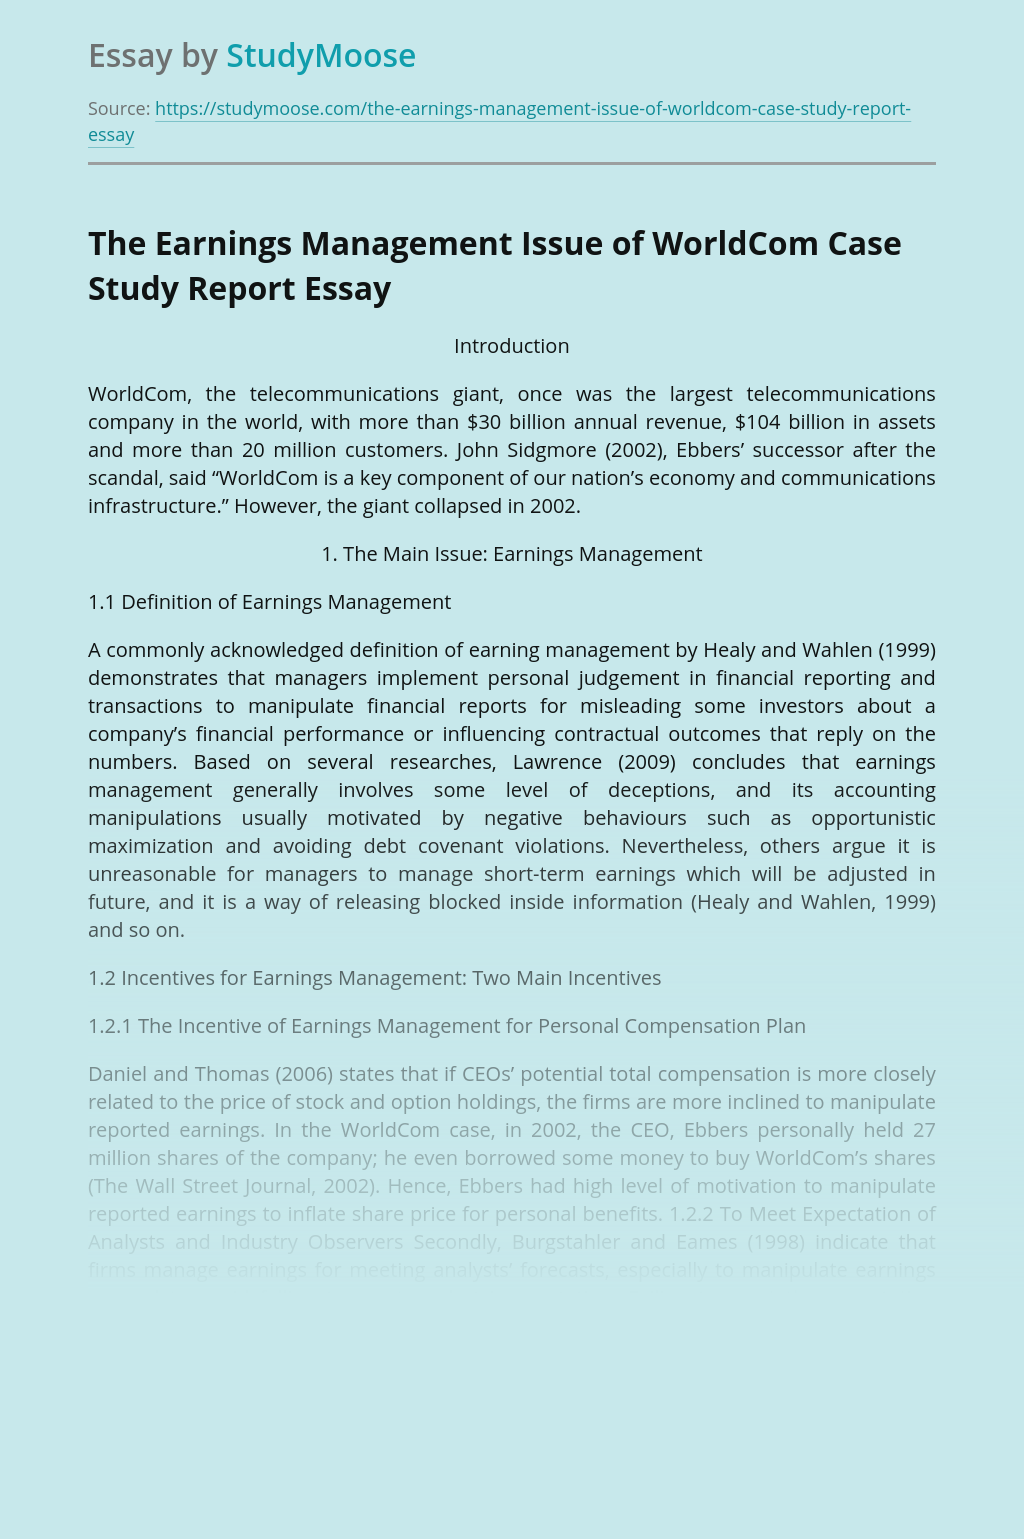 The Earnings Management Issue of WorldCom Case Study Report